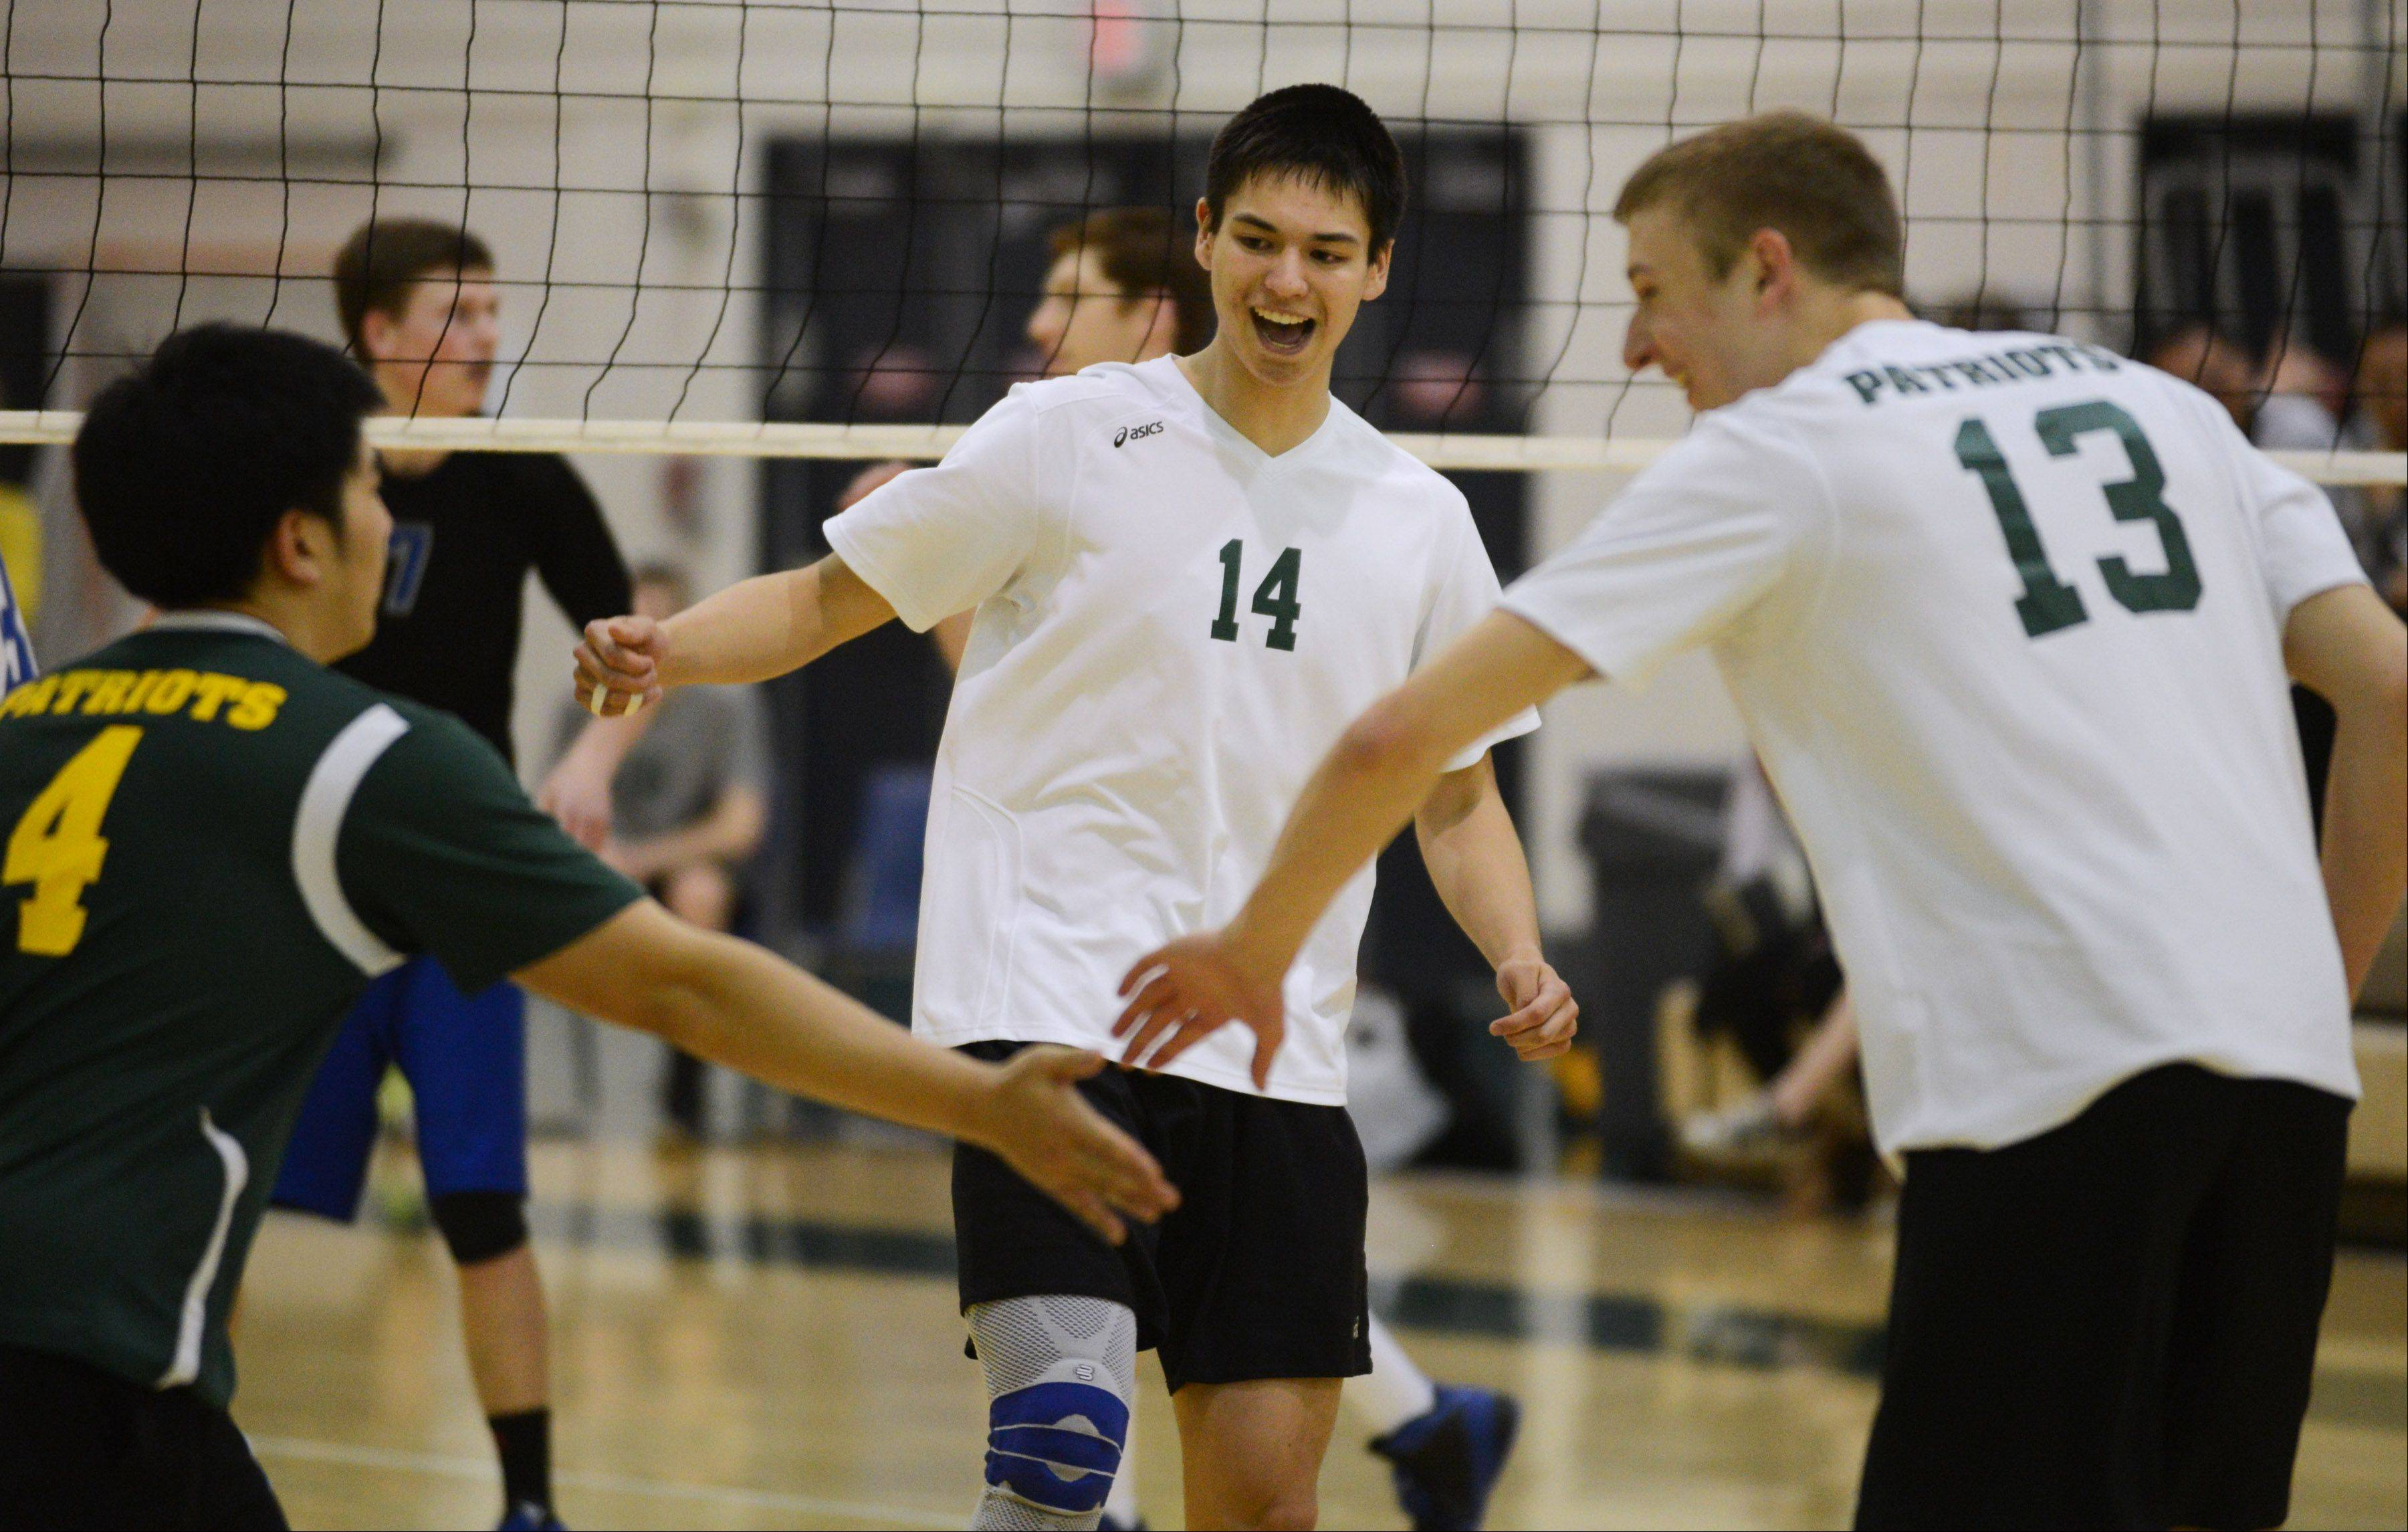 Stevenson's Aaron Zalewski (14) celebrates a point with teammates Kevin Xu (4) and Brad Tiller during Tuesday's volleyball game against Vernon Hills in Lincolnshire.